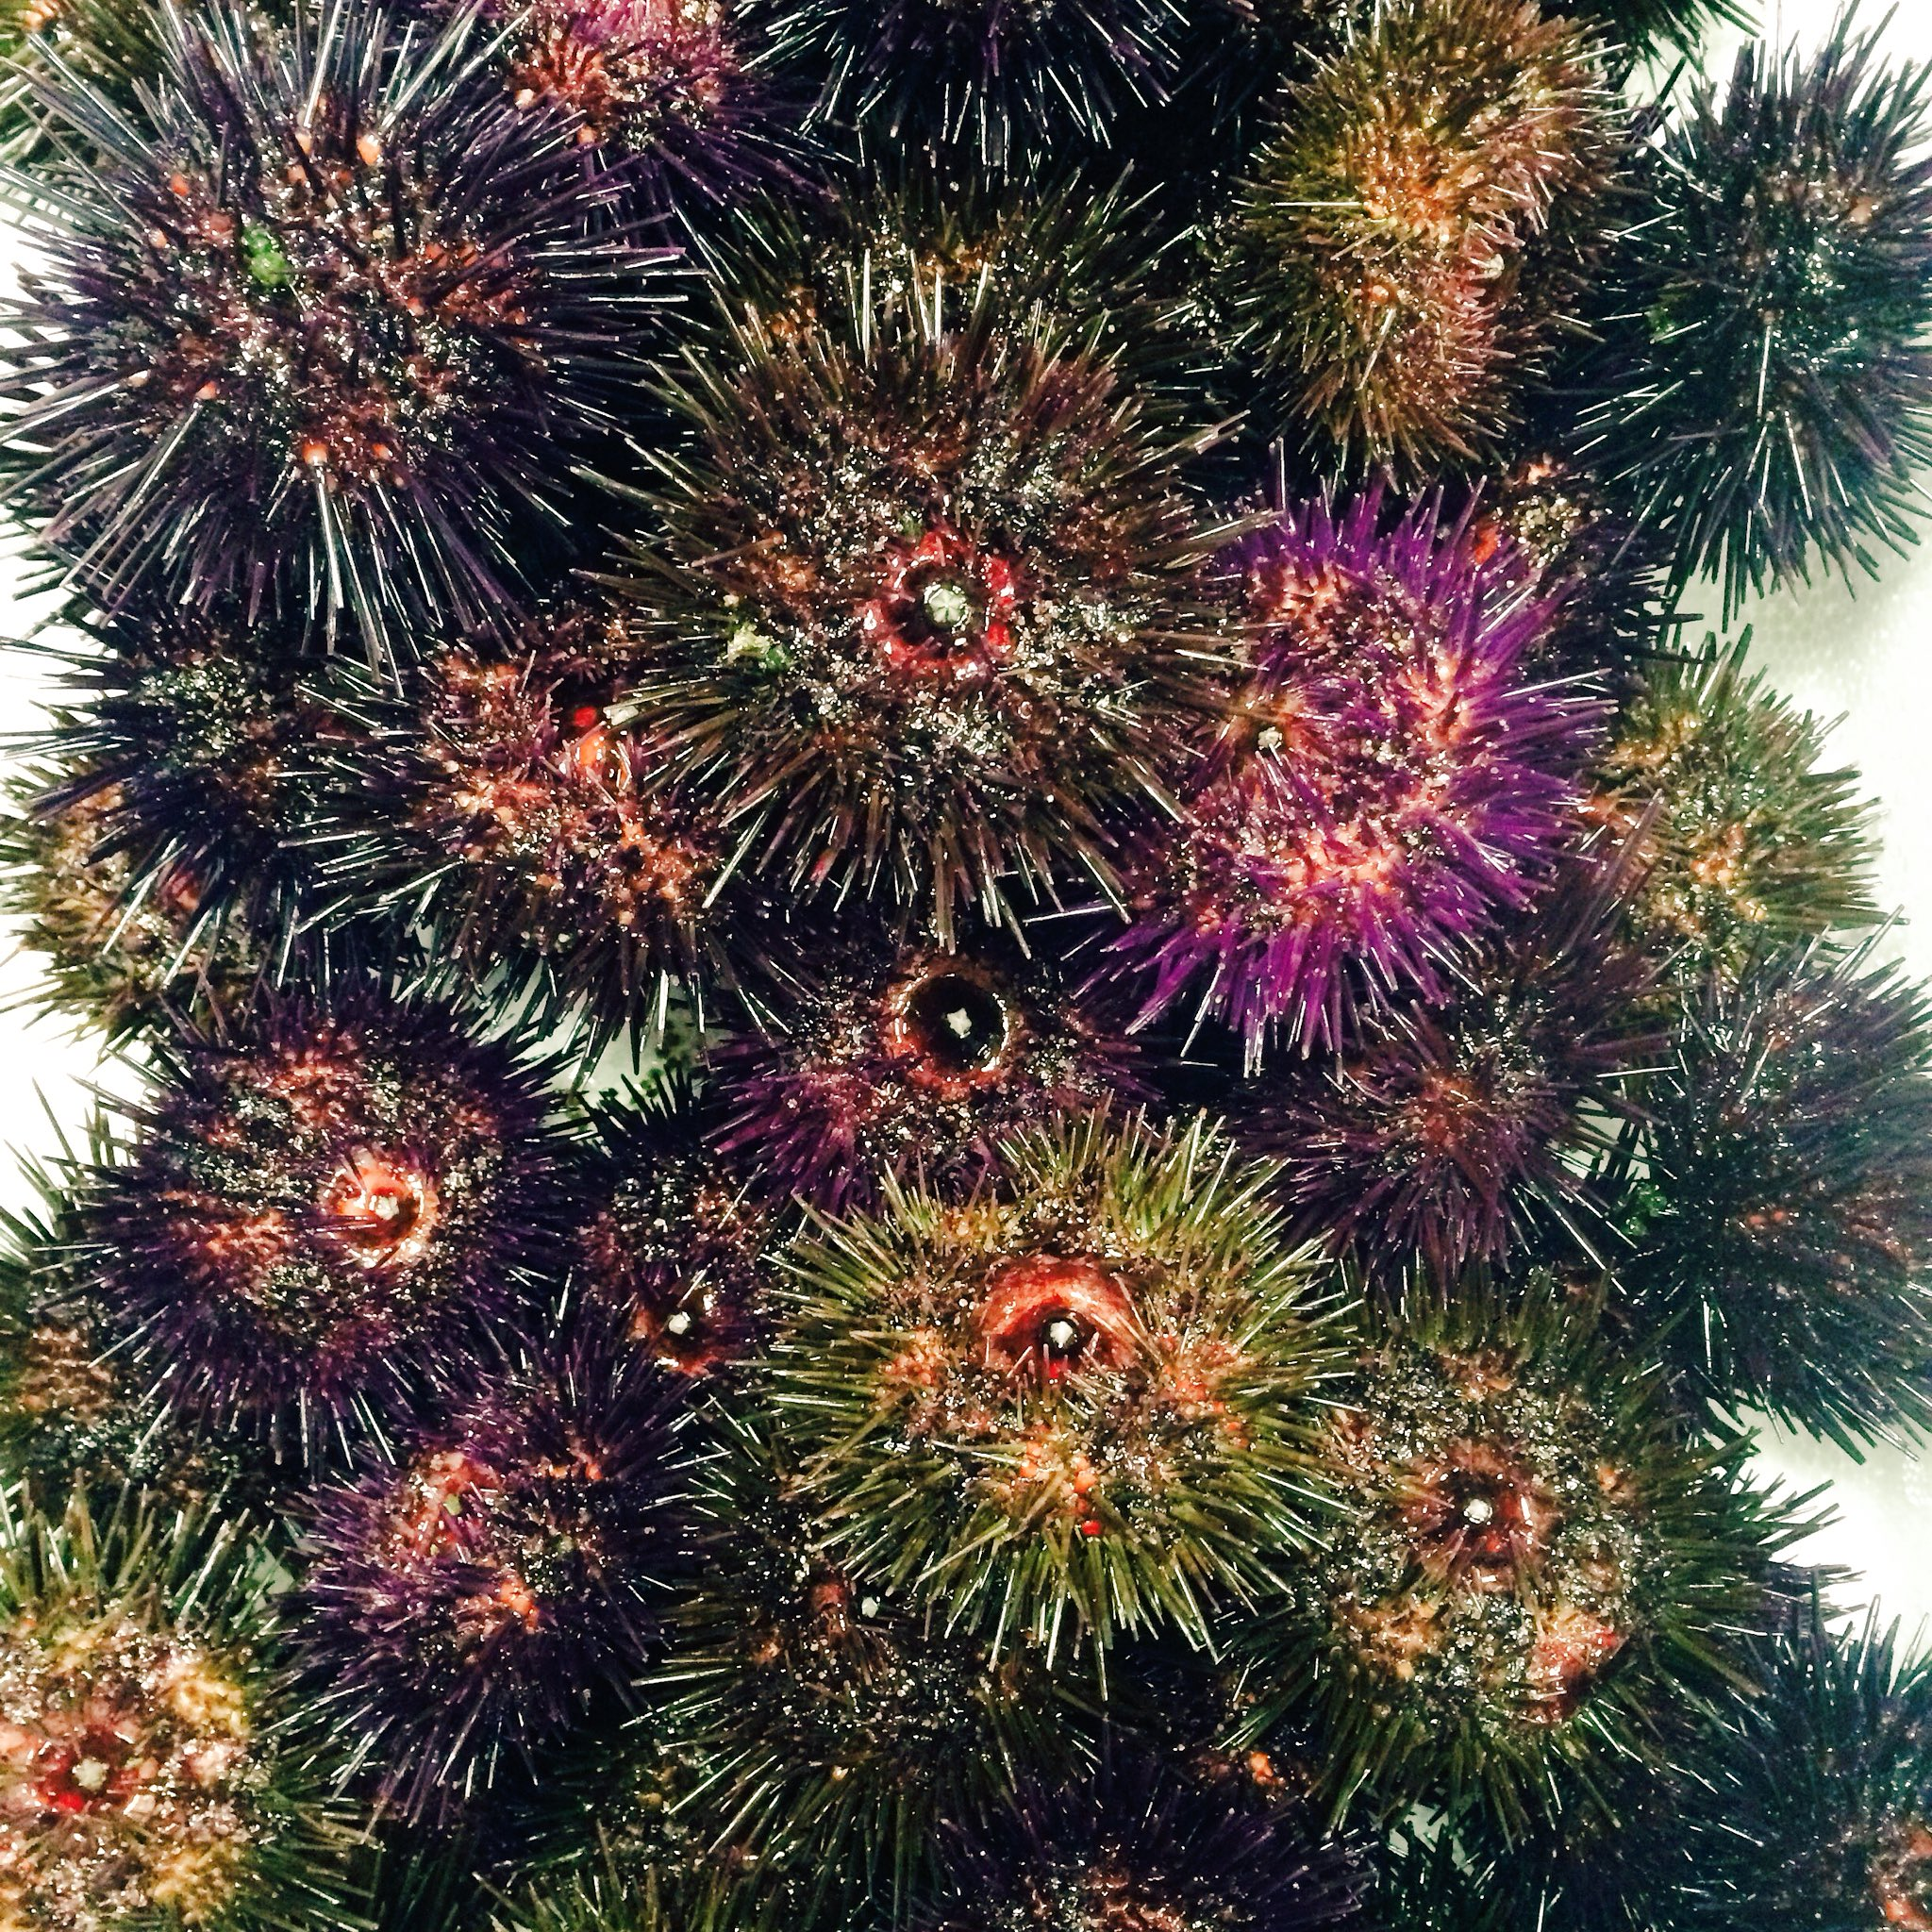 Connemara Urchin ! Thanks to @Mungo_Seaweed #irishfood #WildAtlanticWay #product #Galway https://t.co/p6S9HWtFjb